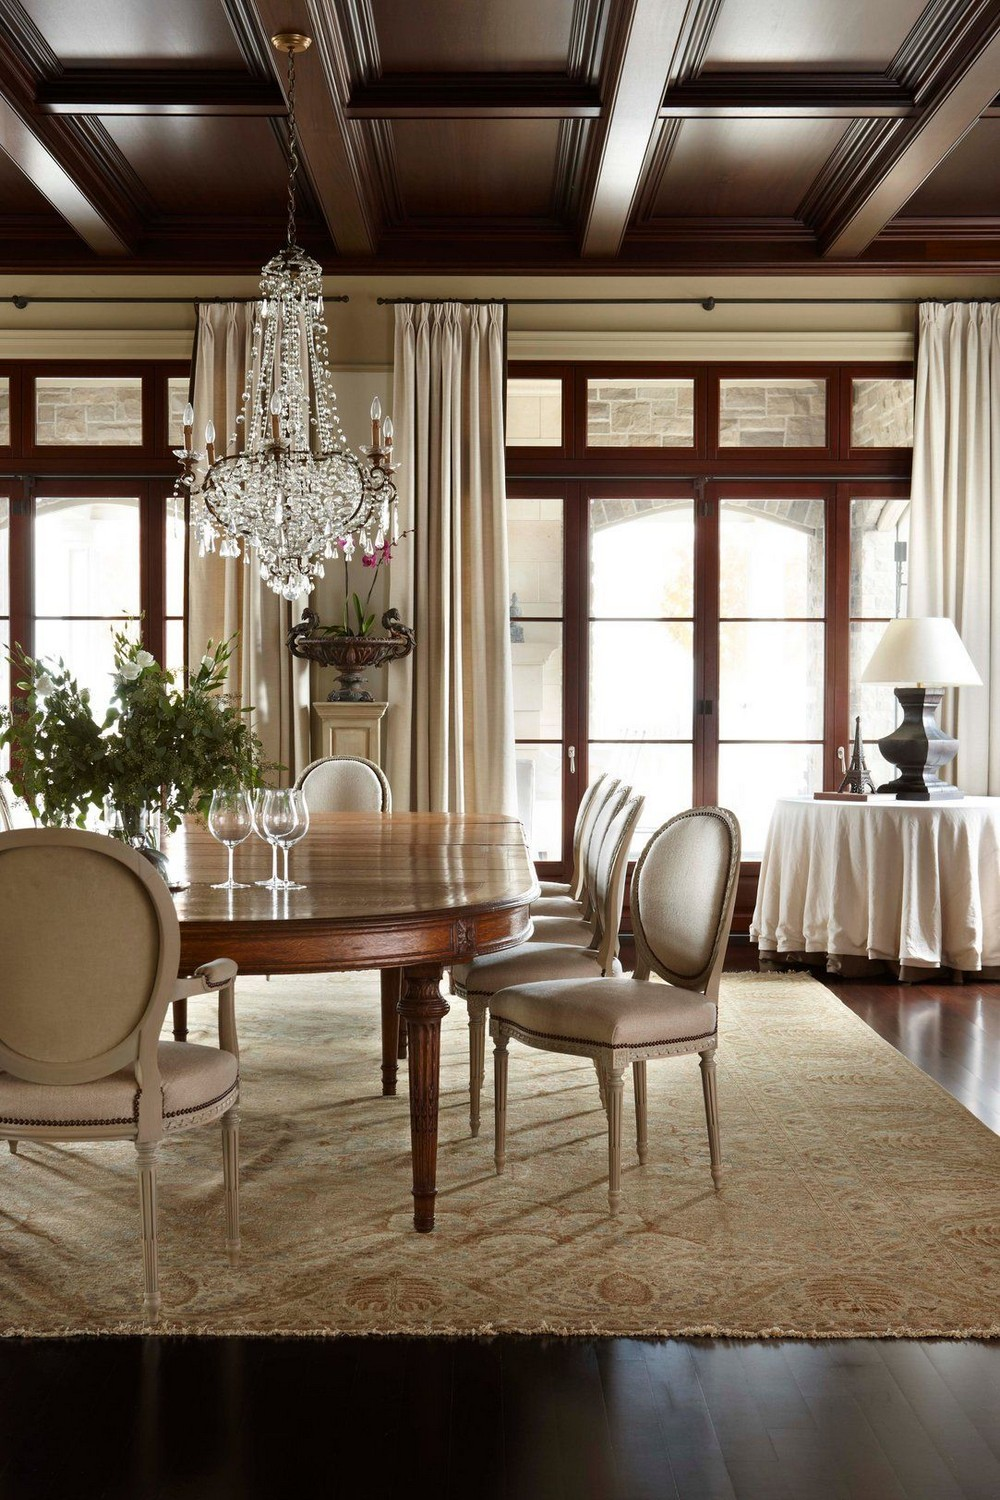 An Unparalleled Devotion to Detail: Dining Rooms by Julie Charbonneau julie charbonneau An Unparalleled Devotion to Detail: Dining Rooms by Julie Charbonneau 4 1stdibs